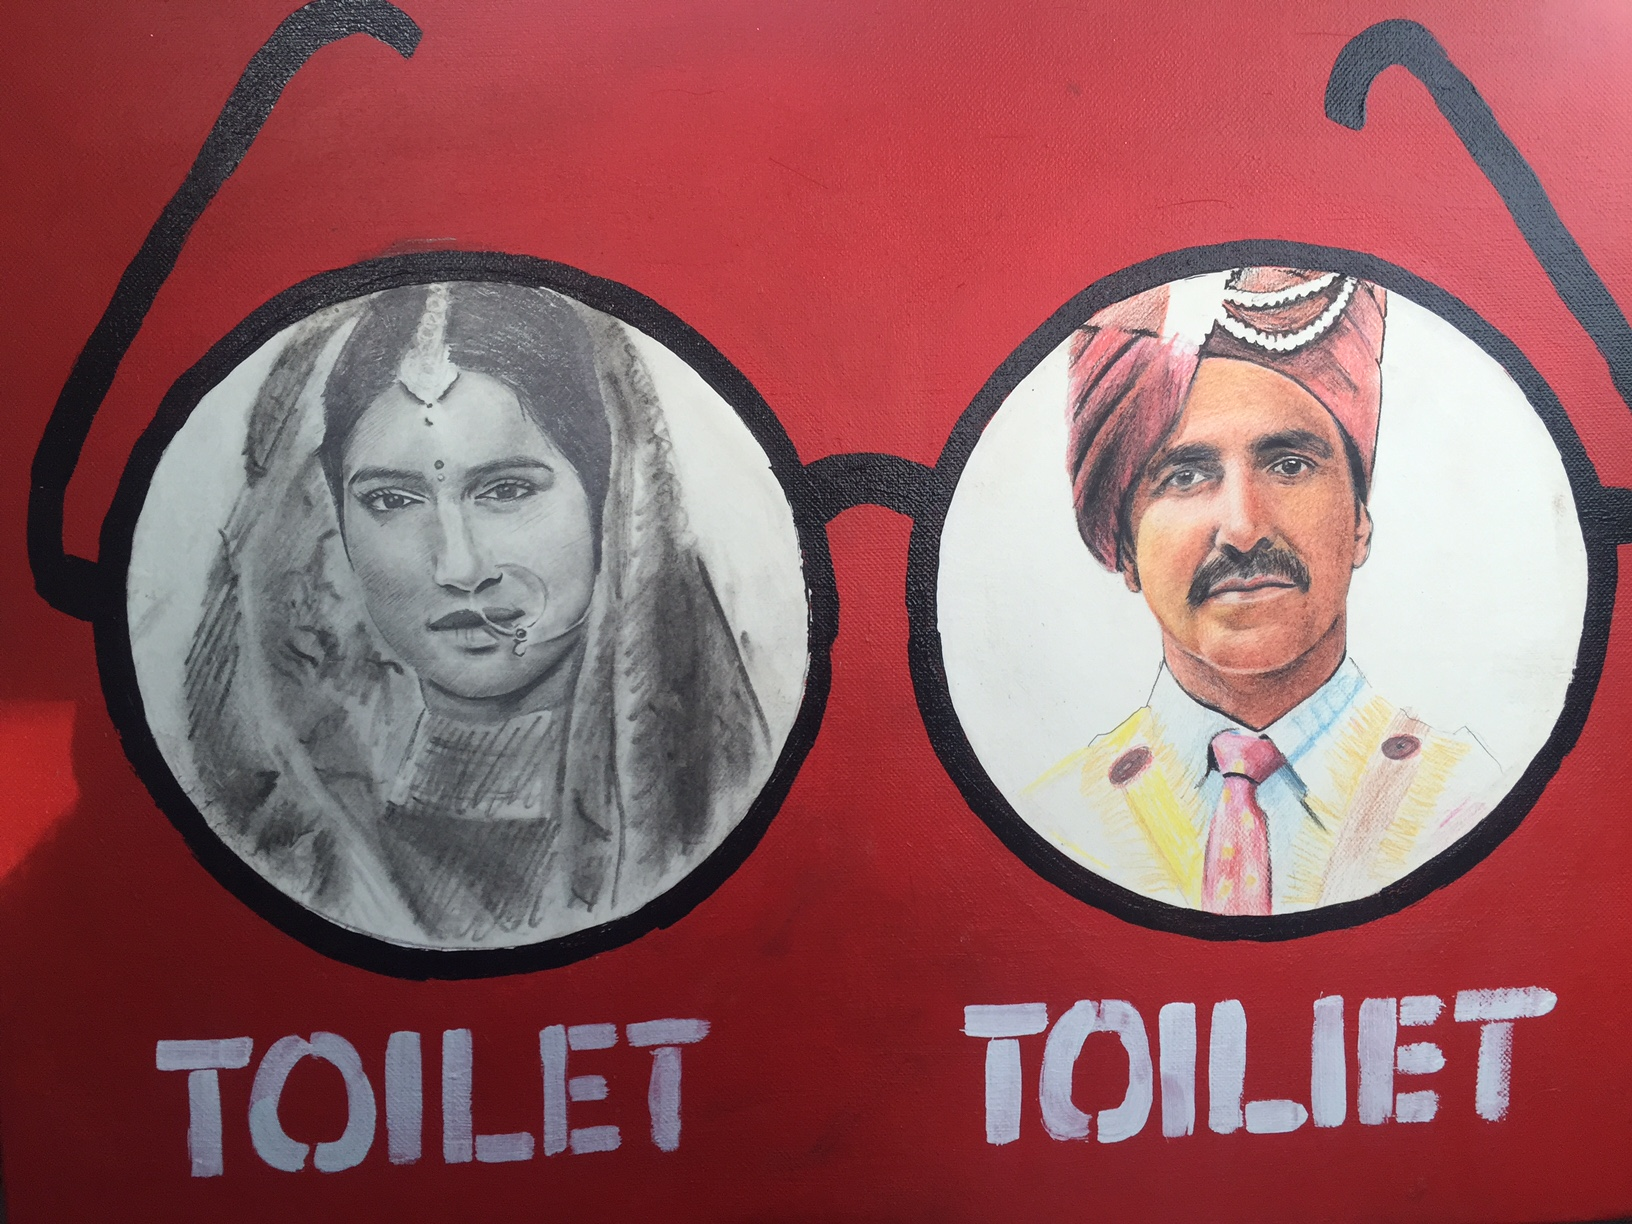 Jaipur art enthusiasts are transforming mobile toilets into pieces of art